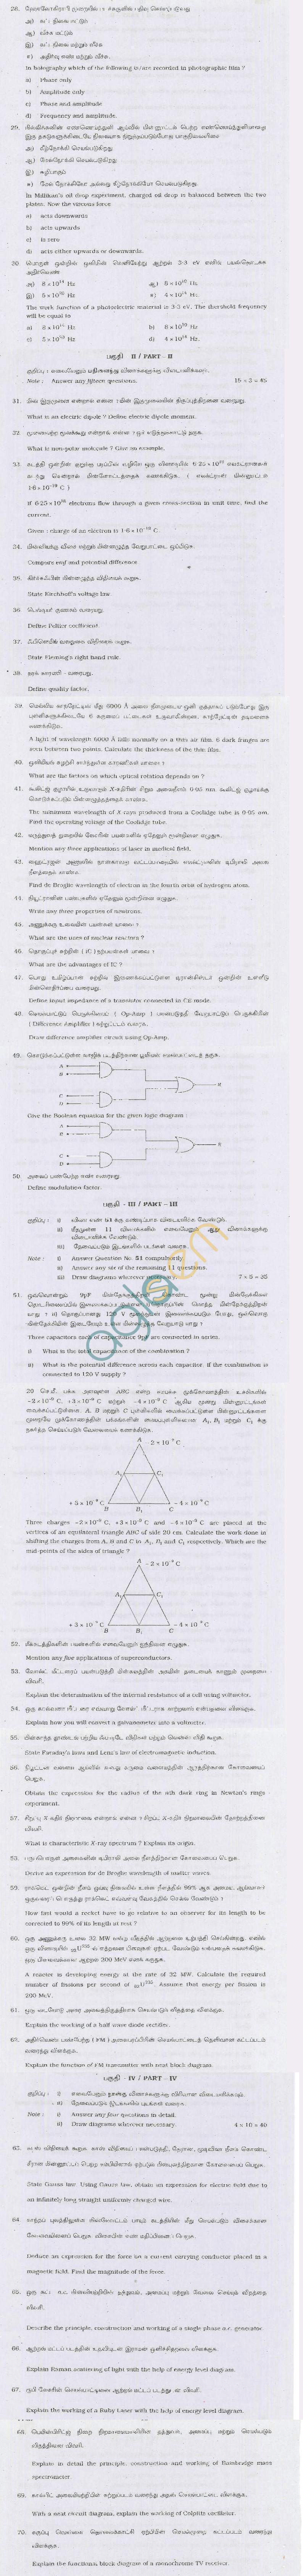 TN Board Higher Secondary (Plus 2)PhysicsQuestion PapersJune 2011